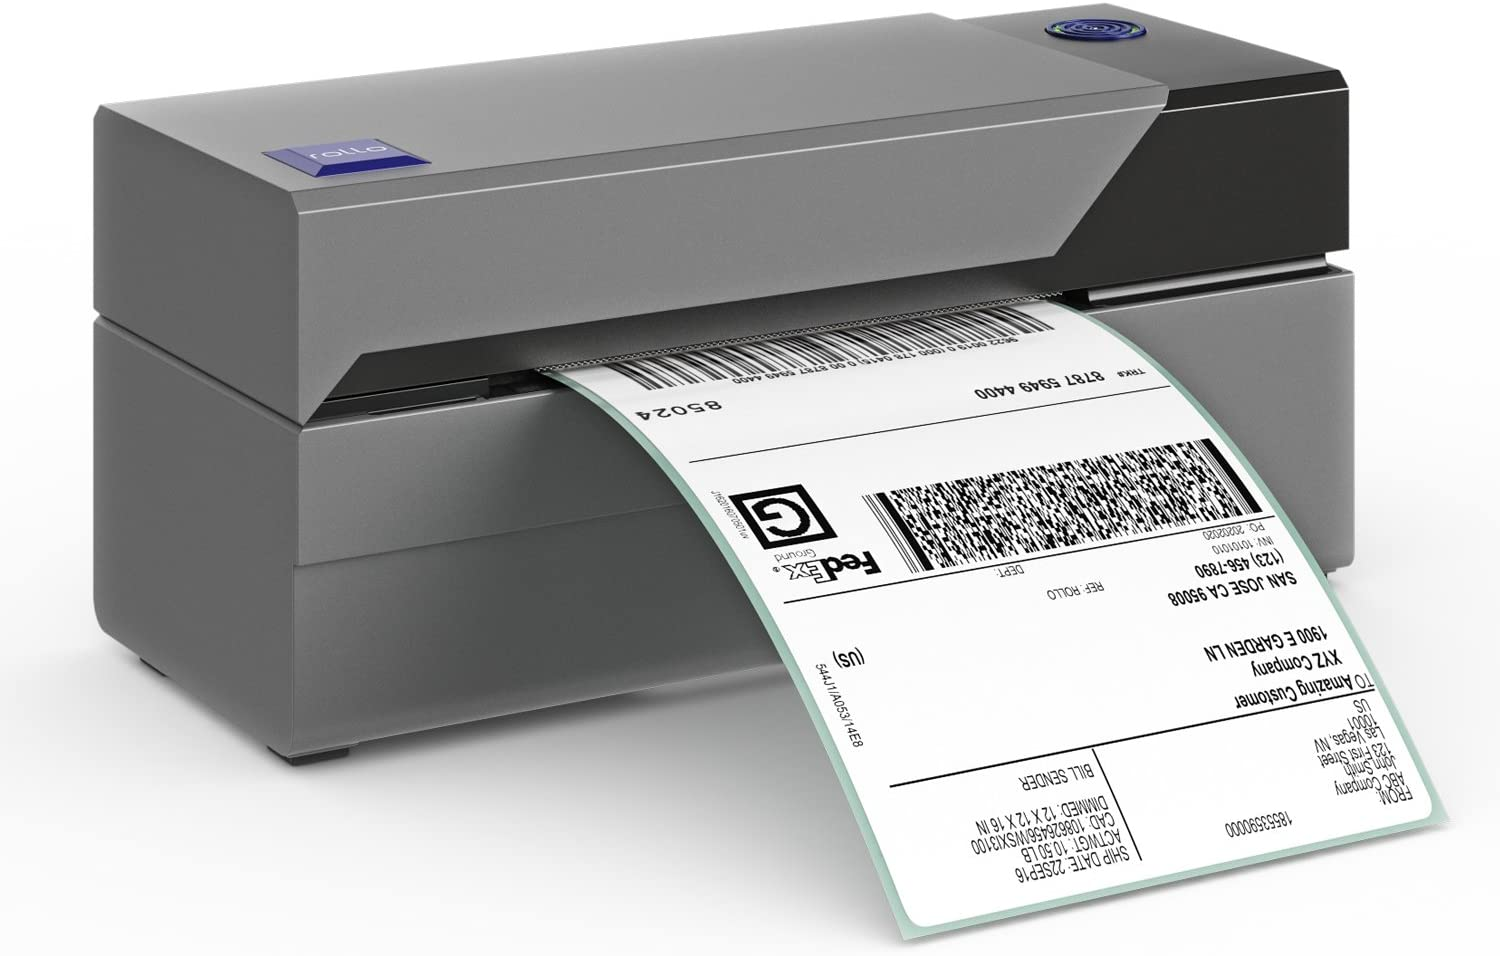 Amazon.com : ROLLO Label Printer - Commercial Grade Direct Thermal High Speed Printer Compatible with Etsy, eBay, Amazon - Barcode Printer - 4x6 Printer : Office Products